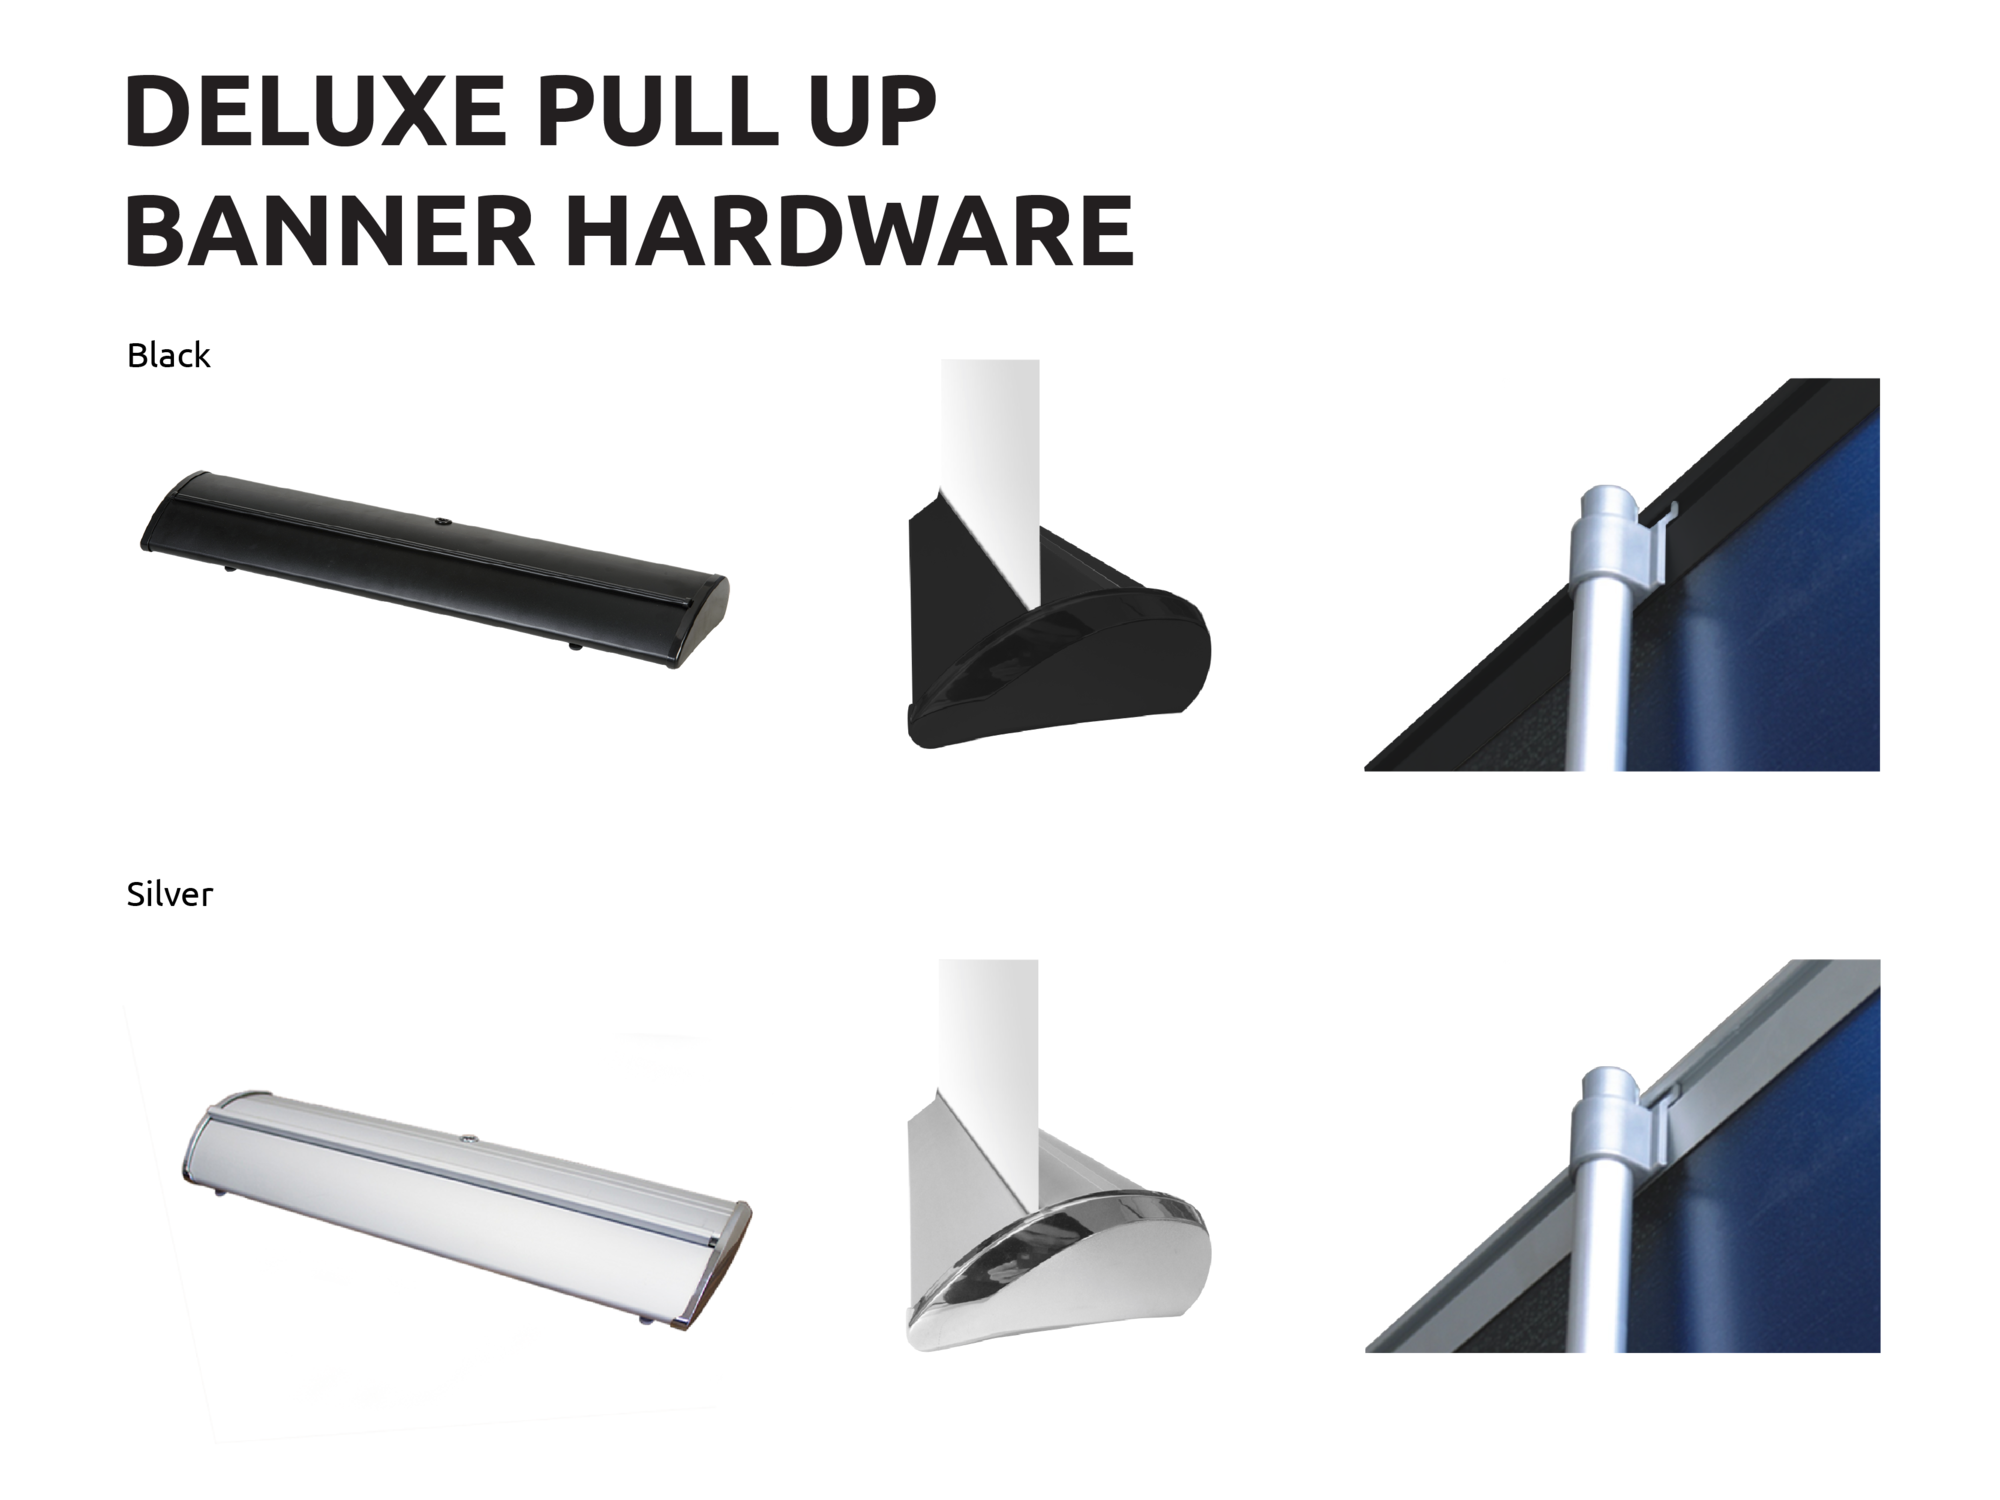 Deluxe Pull Up Banners Sunshine Coast Hardware